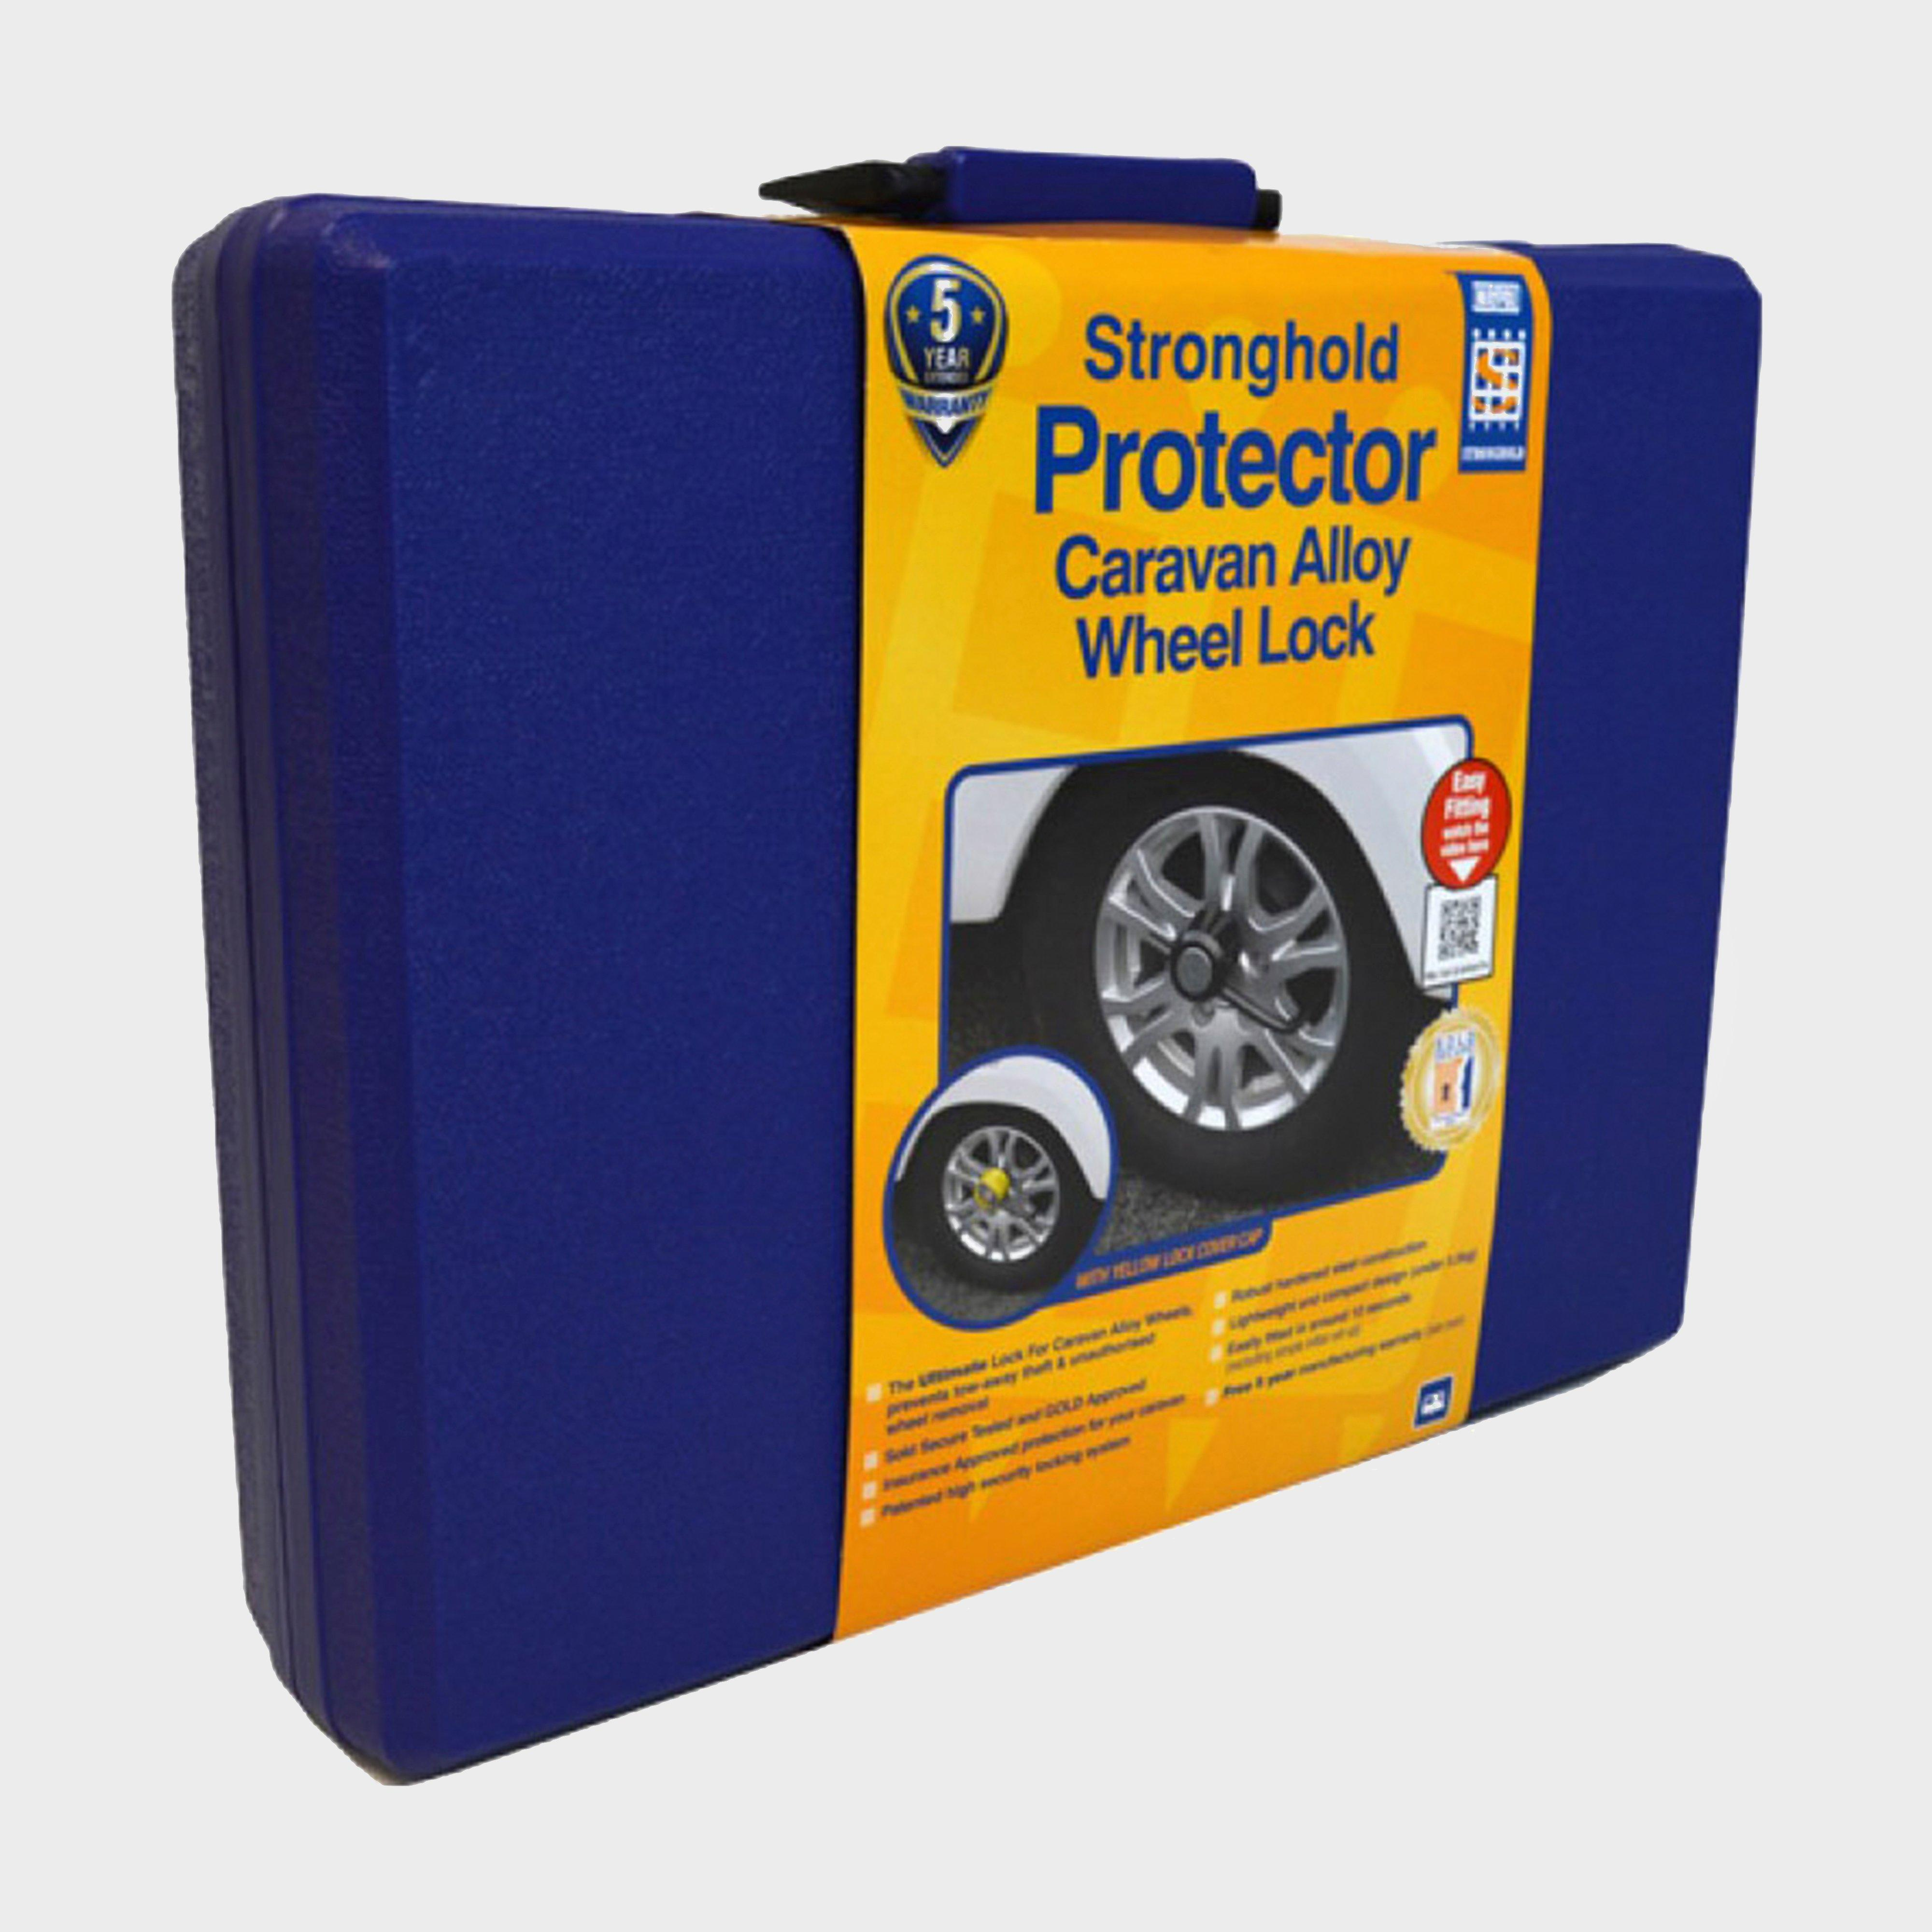 Stronghold Stronghold Protector Caravan Alloy Wheel Lock - Navy, Navy